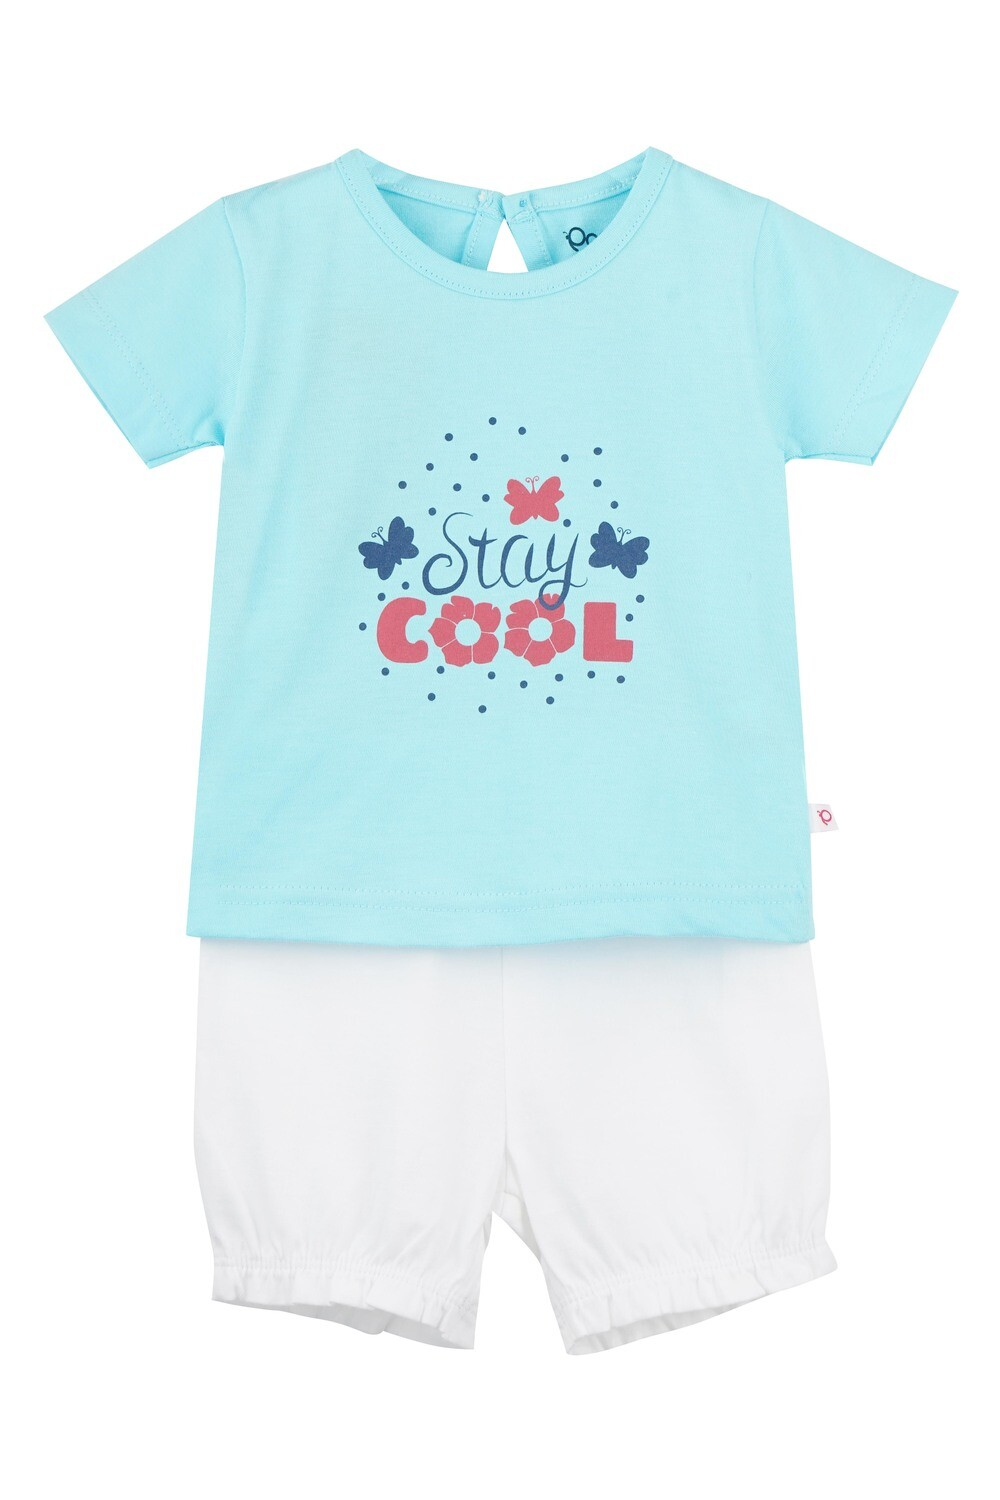 STRAWBERRY Tanager Turquoise Half sleeve Top and Panties for Baby Girls